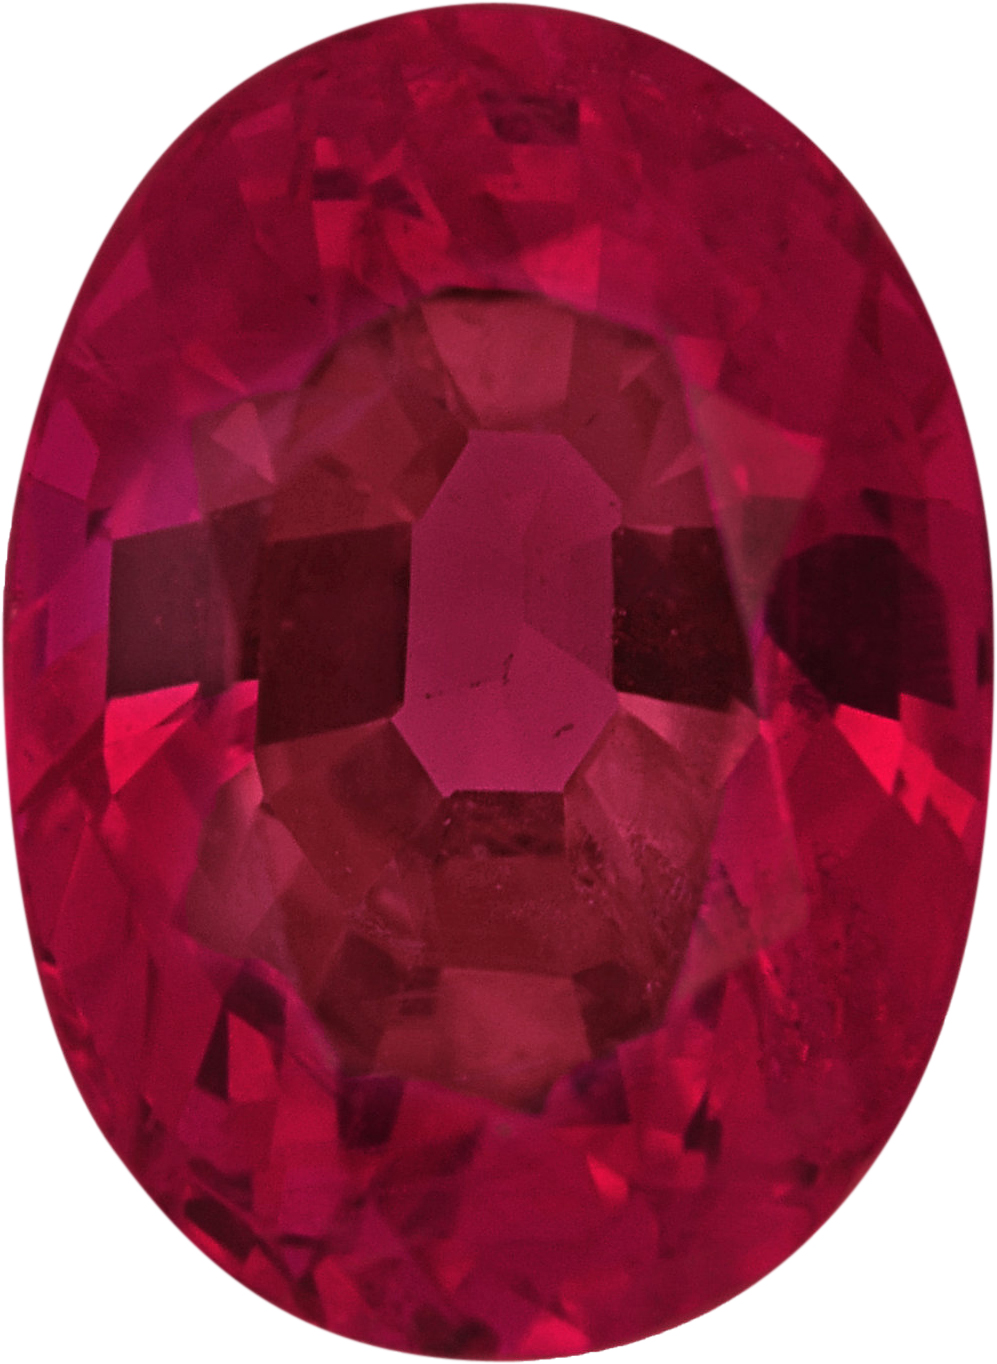 Low Price on Oval Cut Loose Ruby Gem, Deep  Red Color, 6.77 x 4.98 mm, 1.17 carats